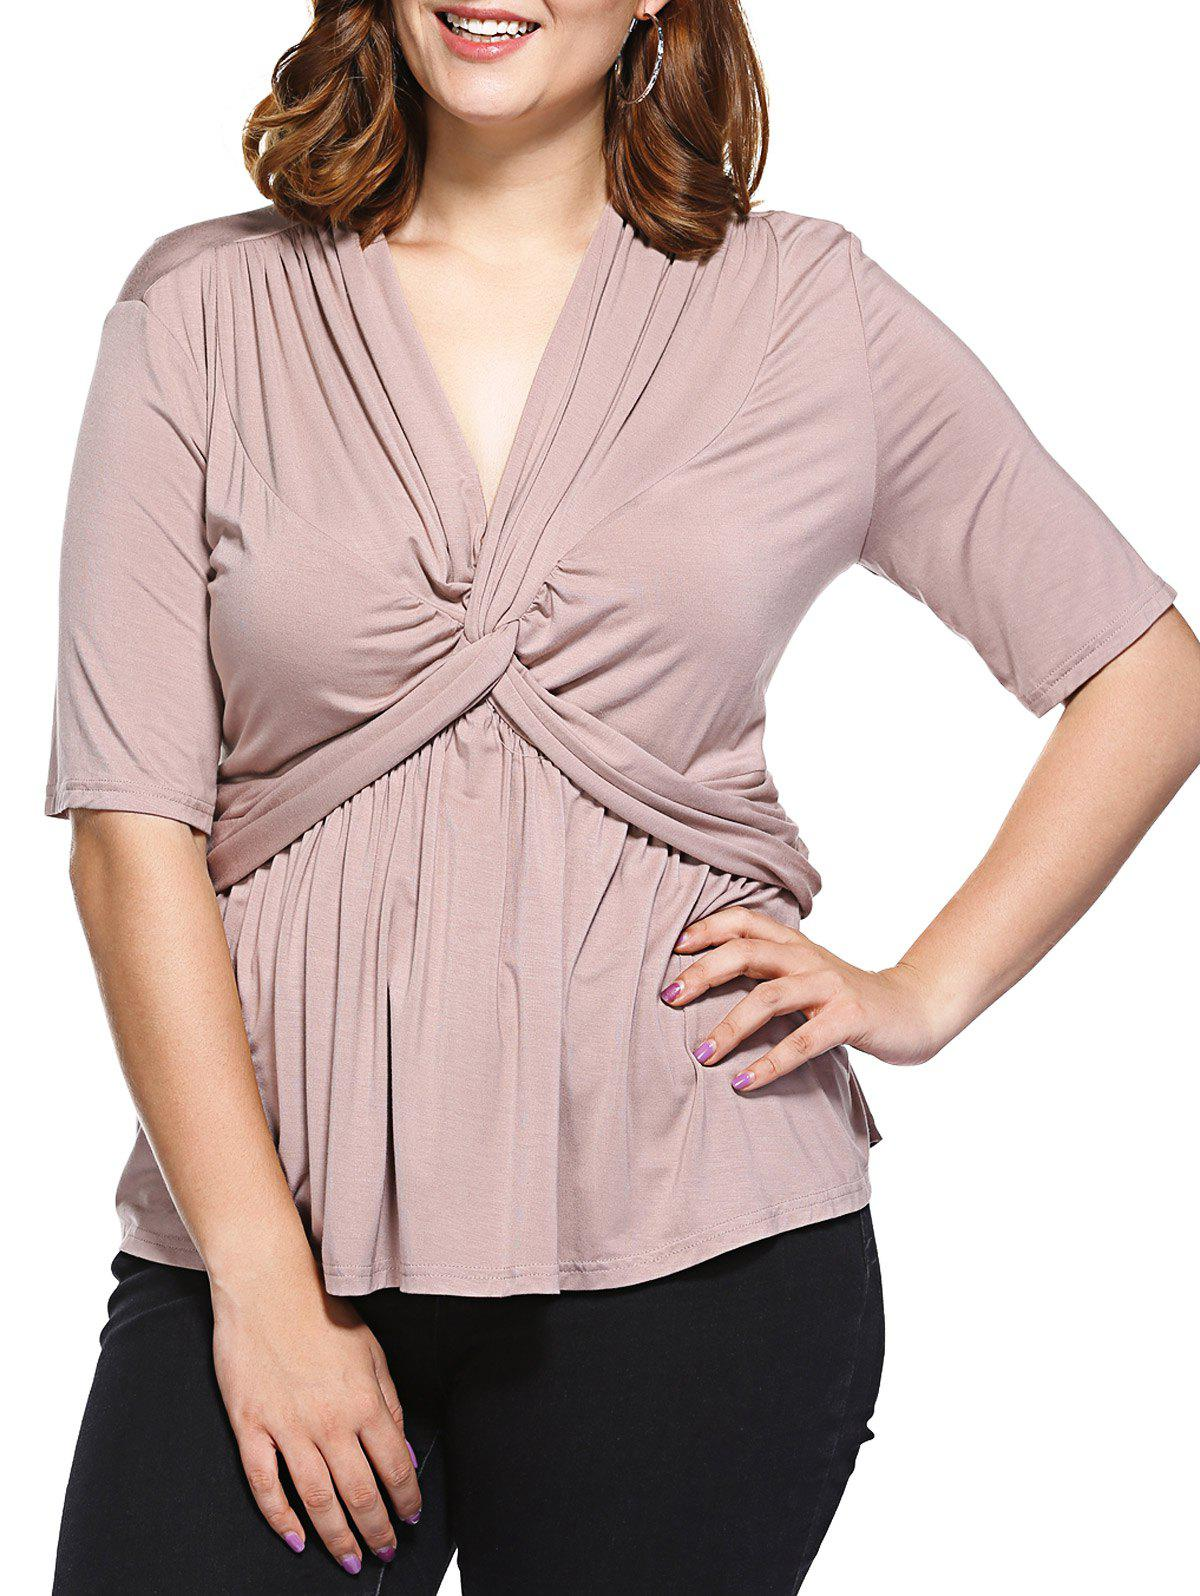 Fashionable V-Neck Fitted Tangle Up Top For Women - APRICOT 3XL